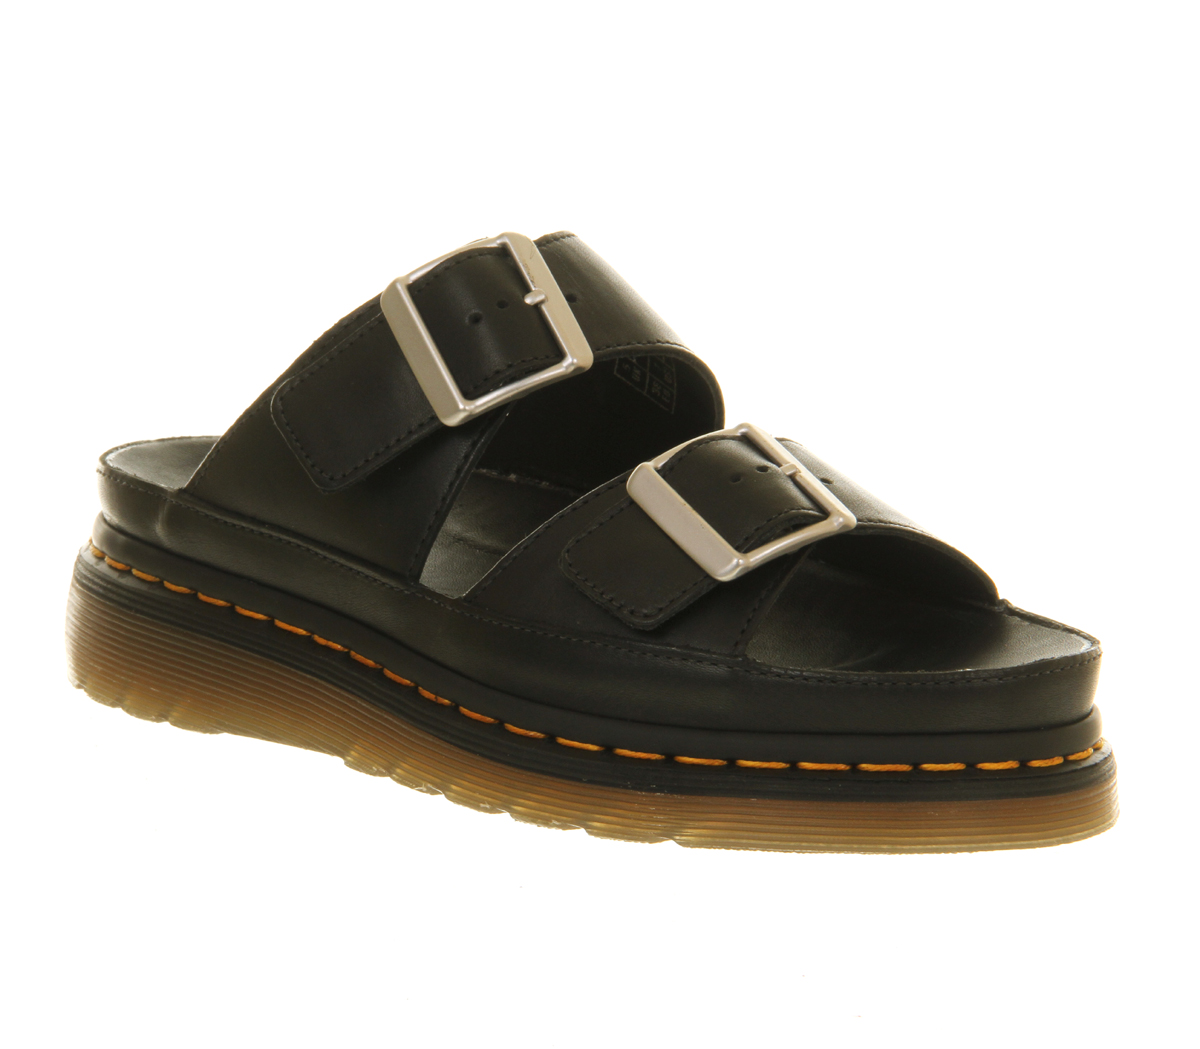 Unique Dr Martens Dr Martens Toa Womens Leather Sandals  Tan  Dr Martens